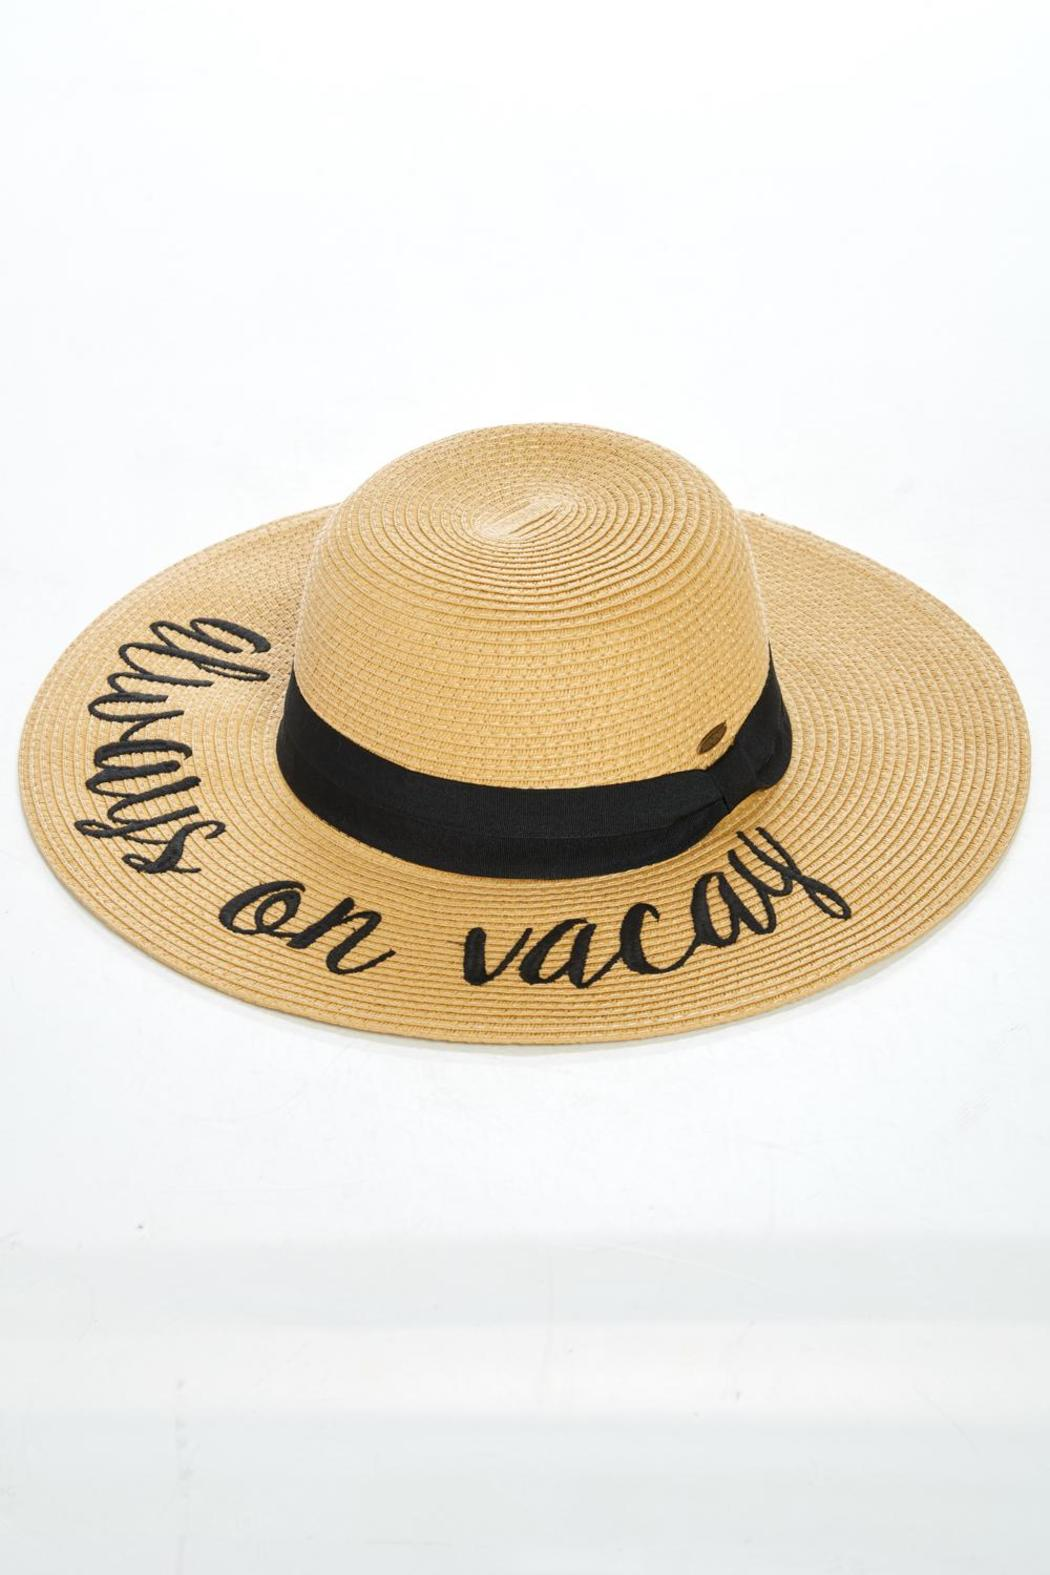 4f452d16a AL Boutique Vacation Hat Always On Vacay from Colorado by Apricot ...